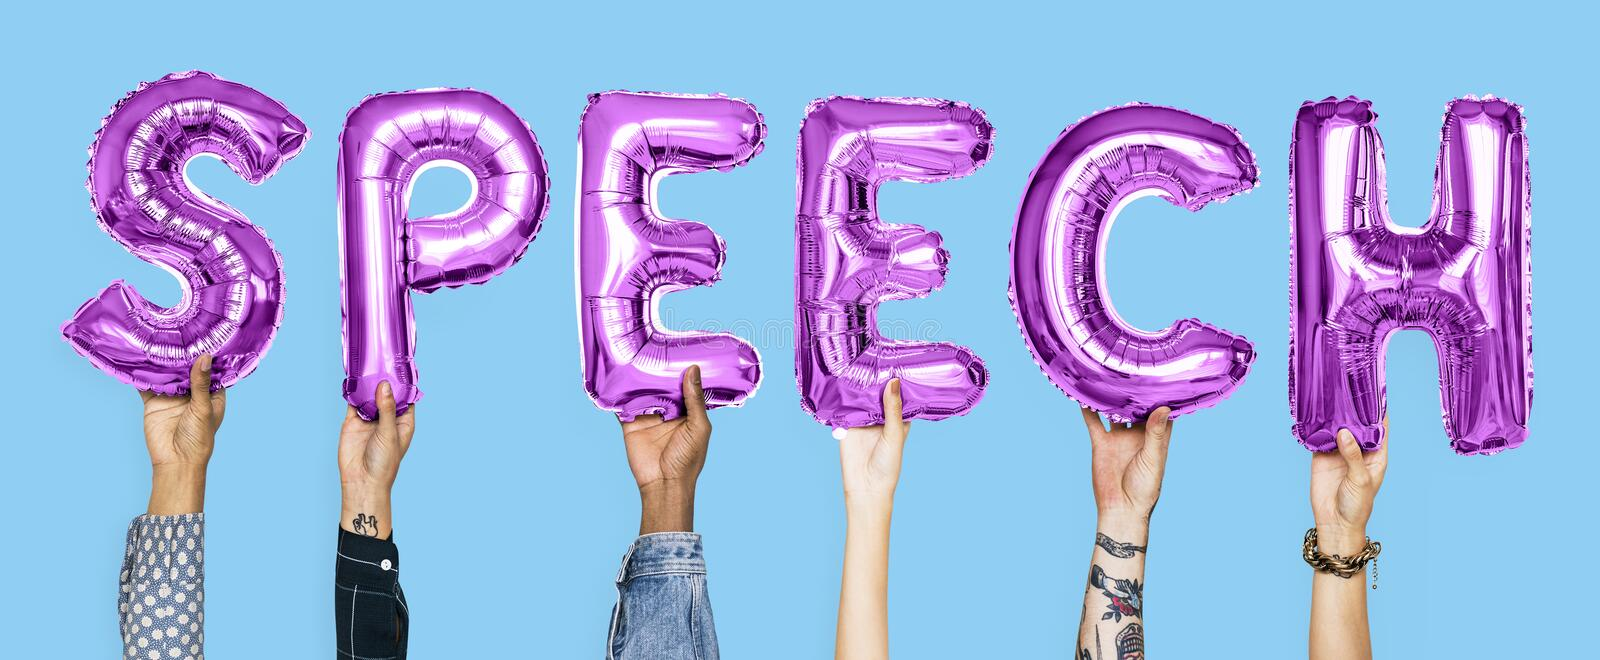 Purple alphabet balloons forming the word speech royalty free stock photography